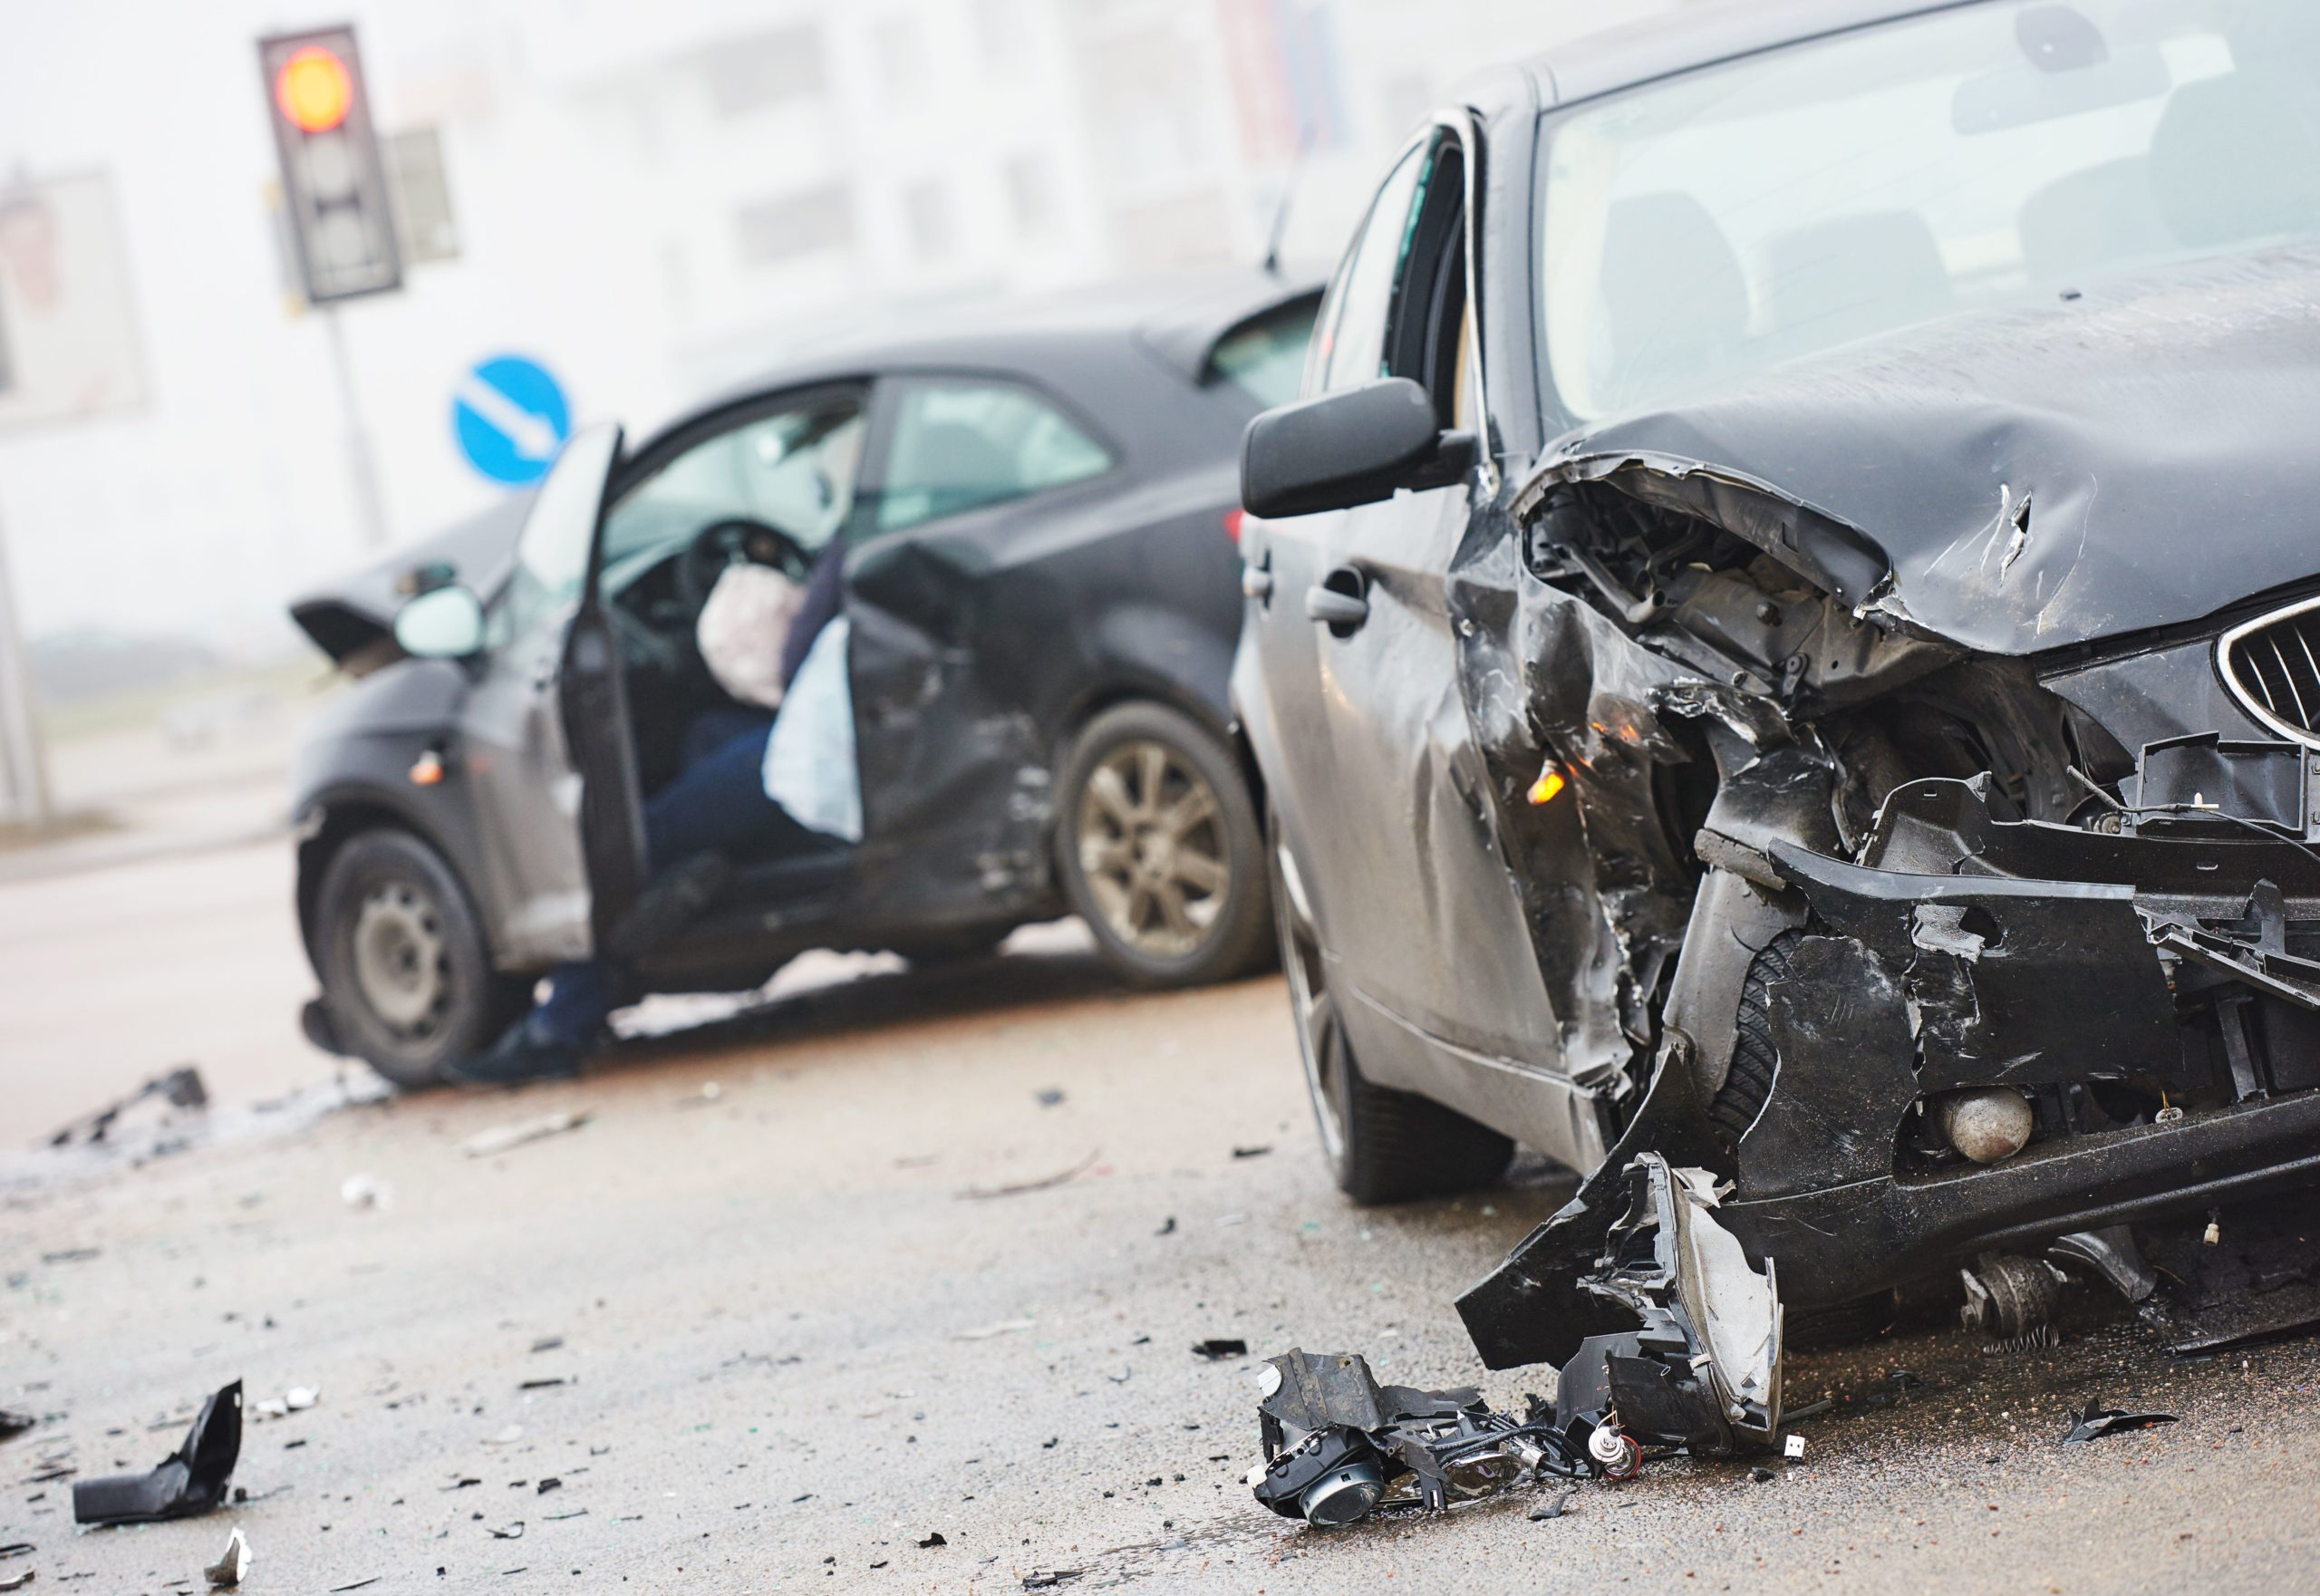 Legal Steps To Take After A Fatal Car Accident